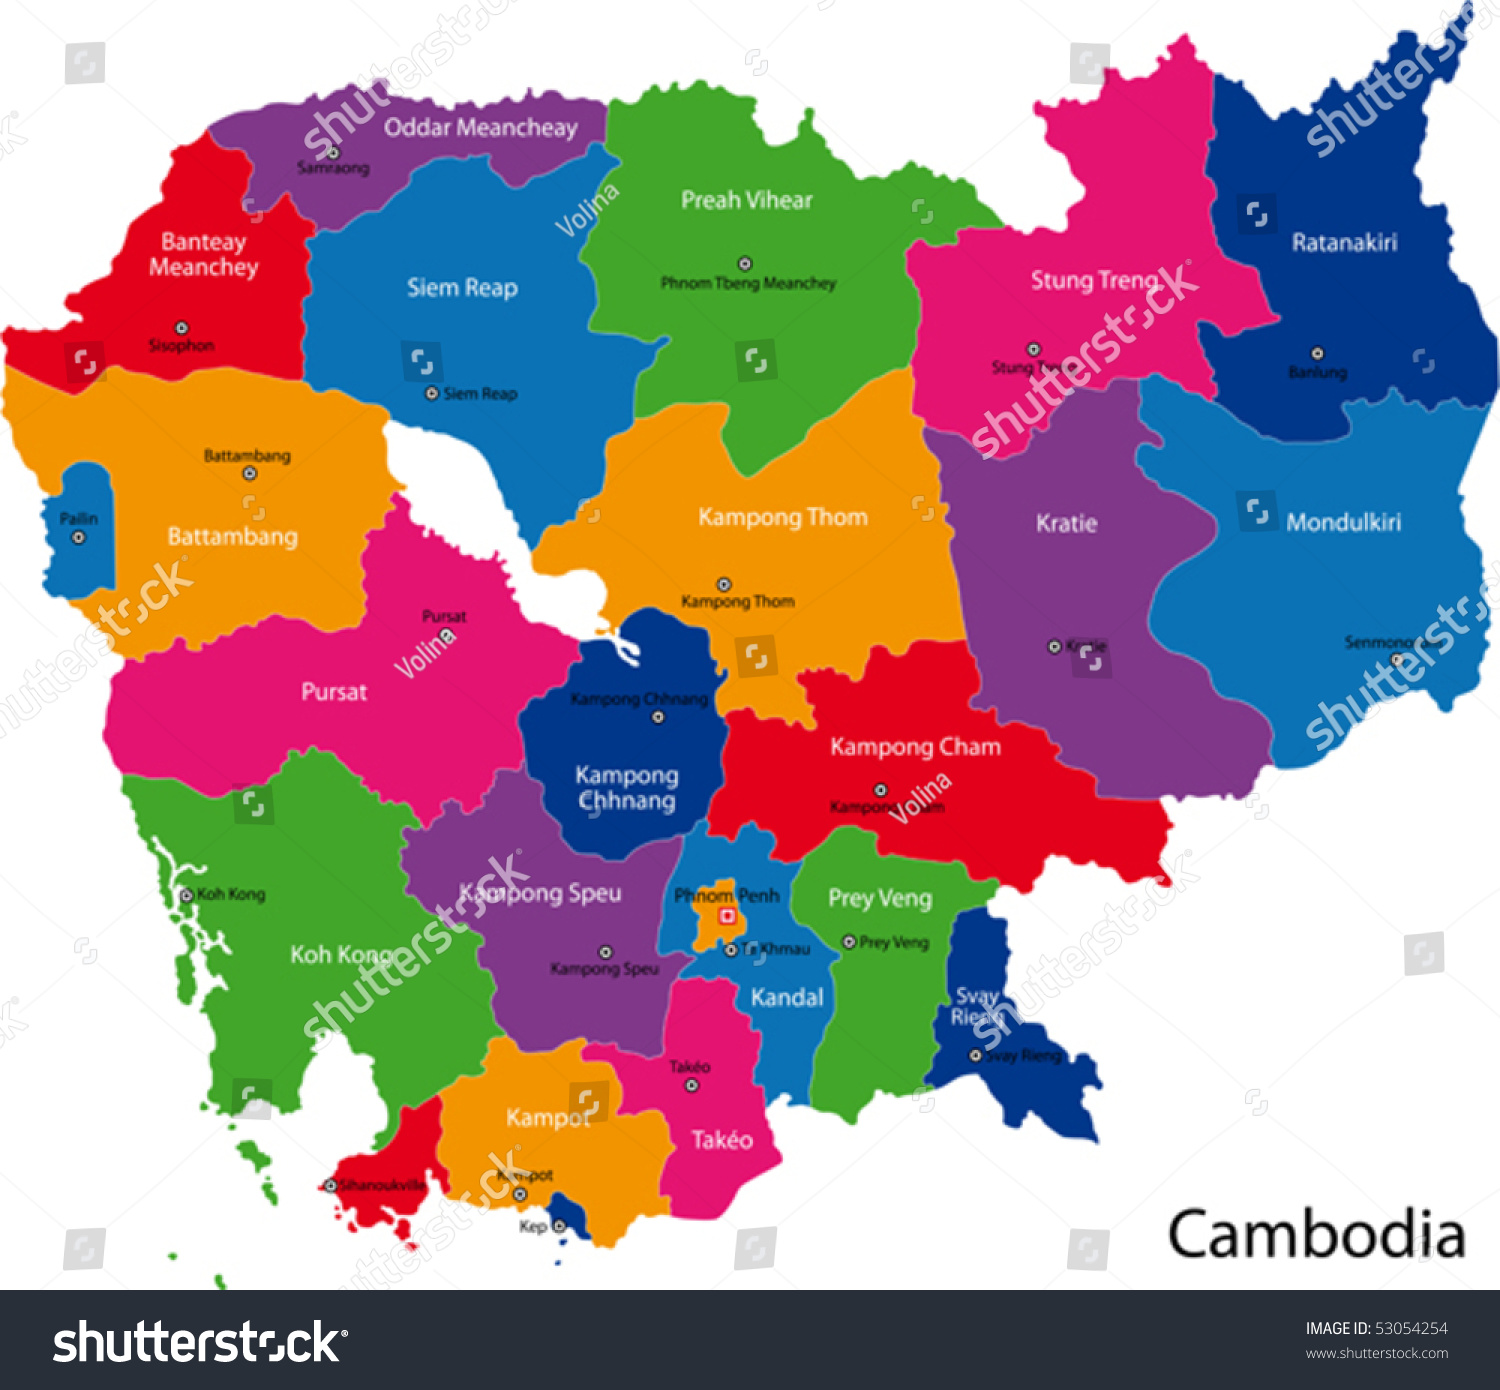 clipart map of cambodia - photo #31